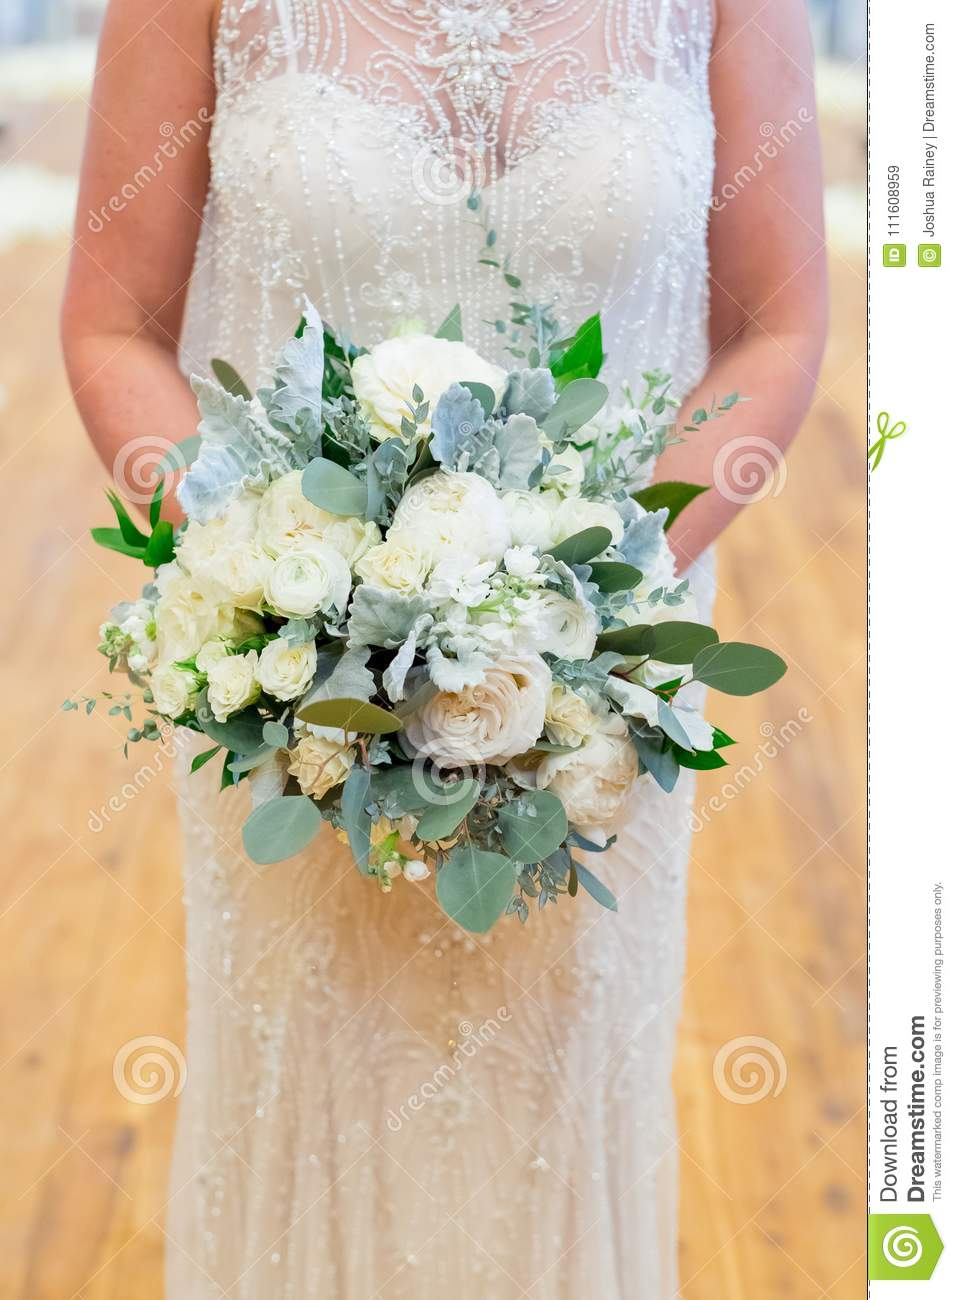 Bridal bouquet of white and green flowers stock image image of download bridal bouquet of white and green flowers stock image image of tradition flower izmirmasajfo